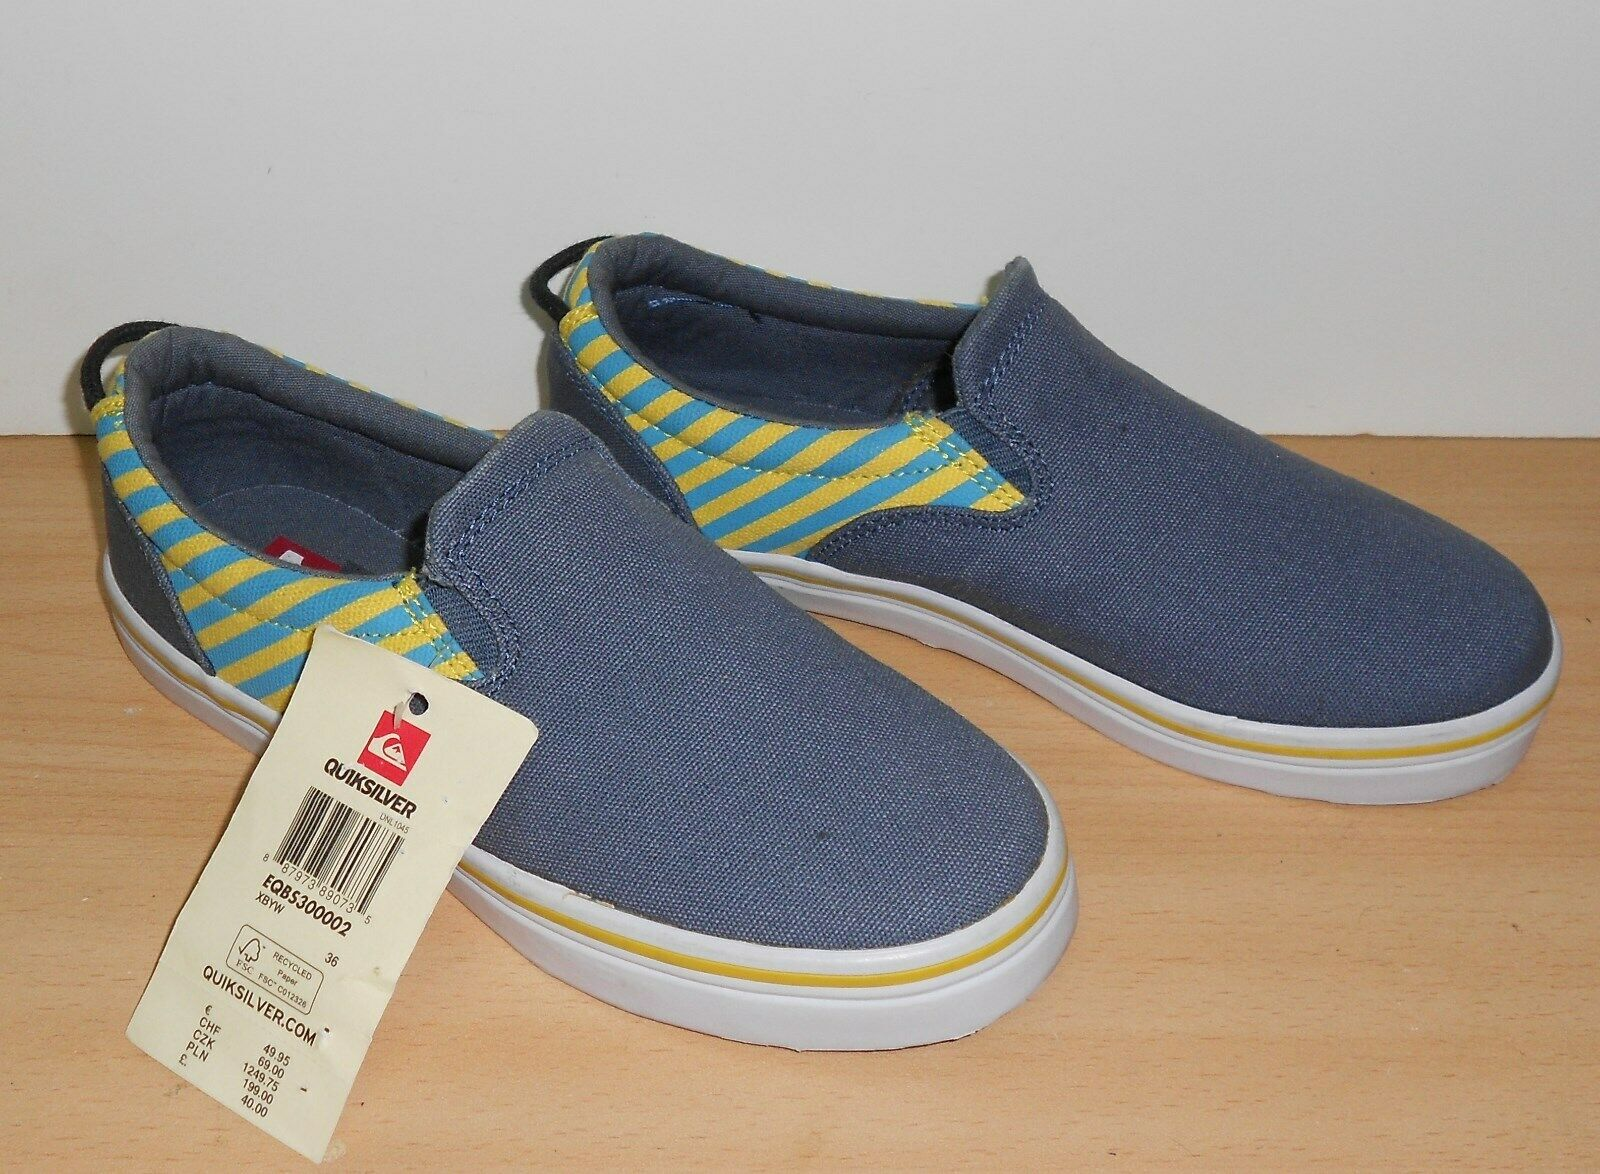 VANS Classic Slip On bluee Navy UNISEX Trainers shoes - NEW Boys Size 3